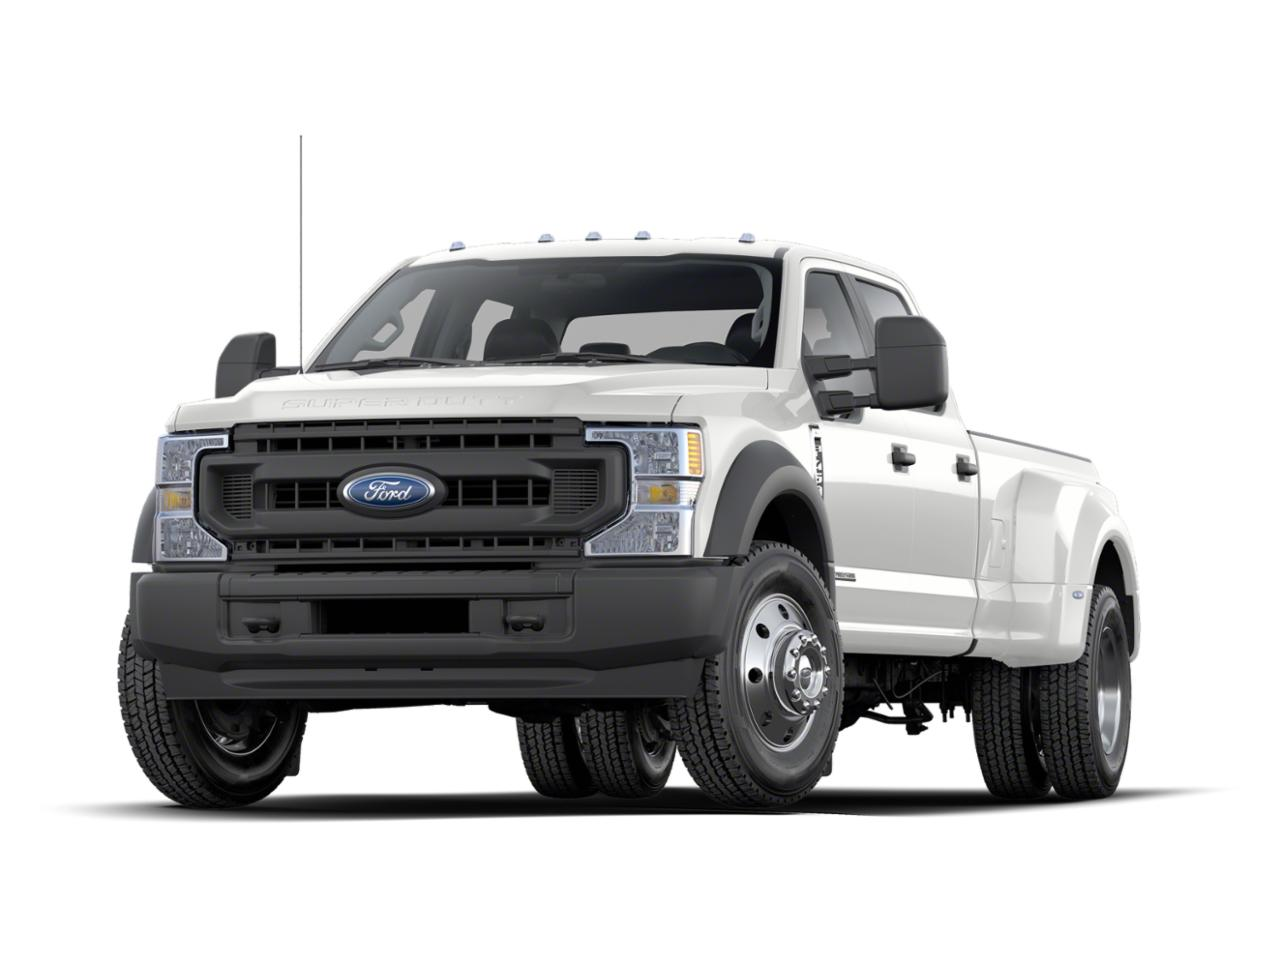 2020 Ford Super Duty F-450 DRW Vehicle Photo in Denver, CO 80123